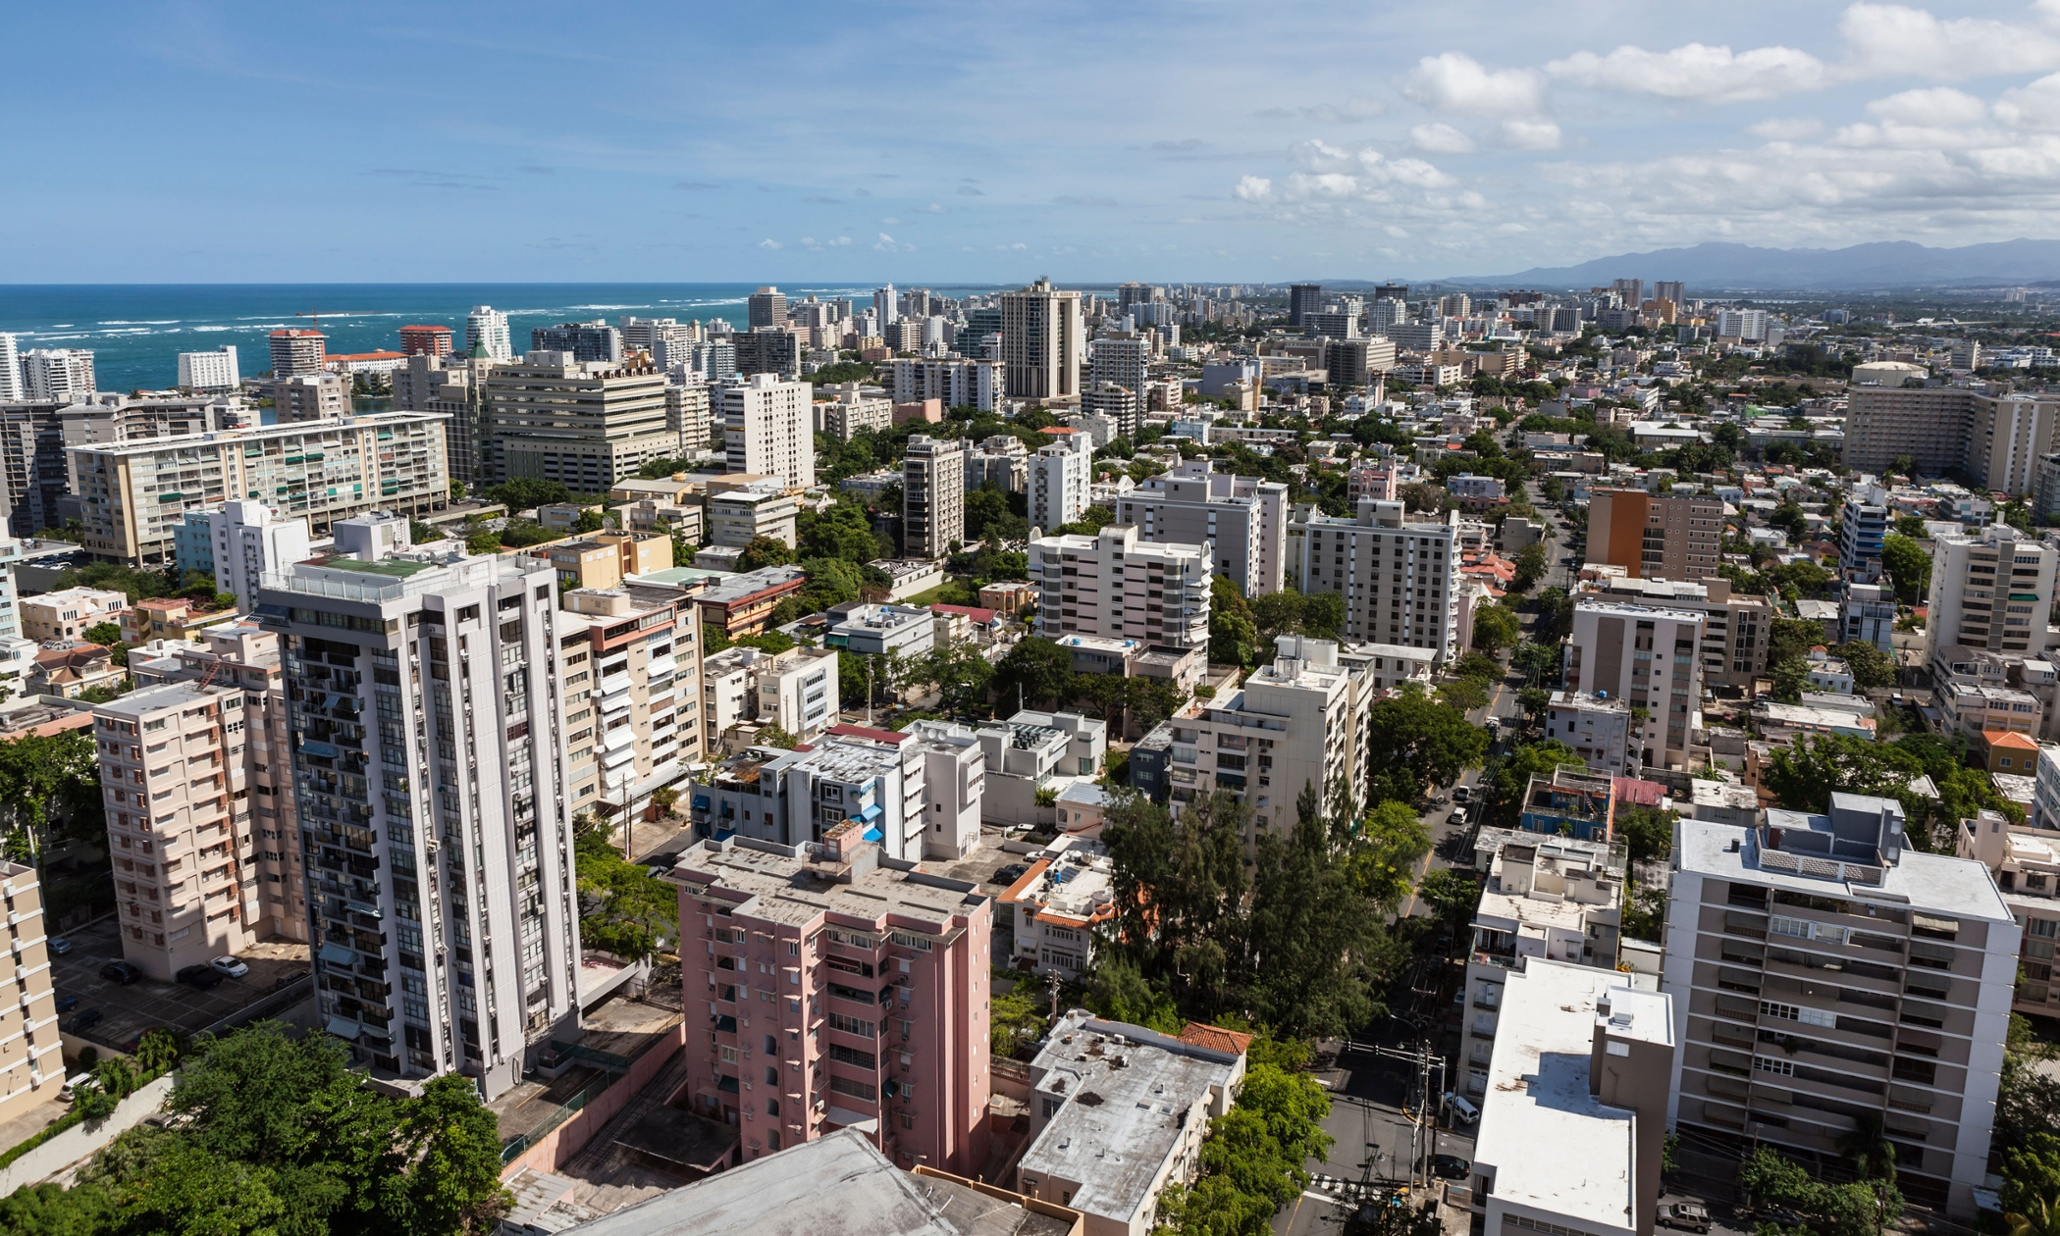 Former IMF economists give damning assessment of Puerto Rico economy